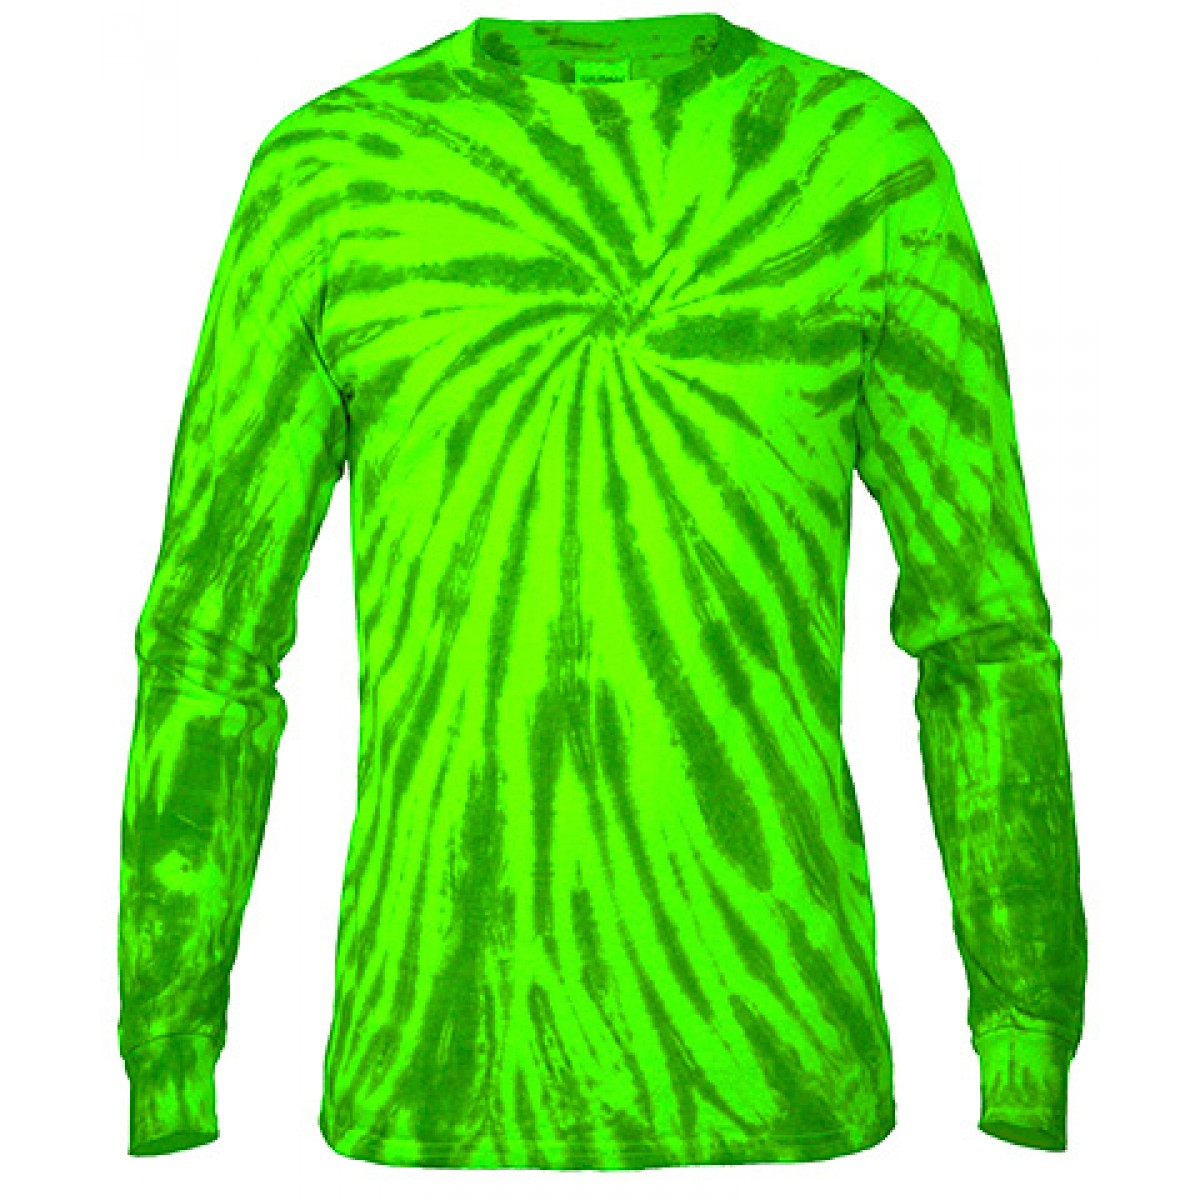 Multi Color Tie-Dye Long Sleeve Shirt -Green-YL